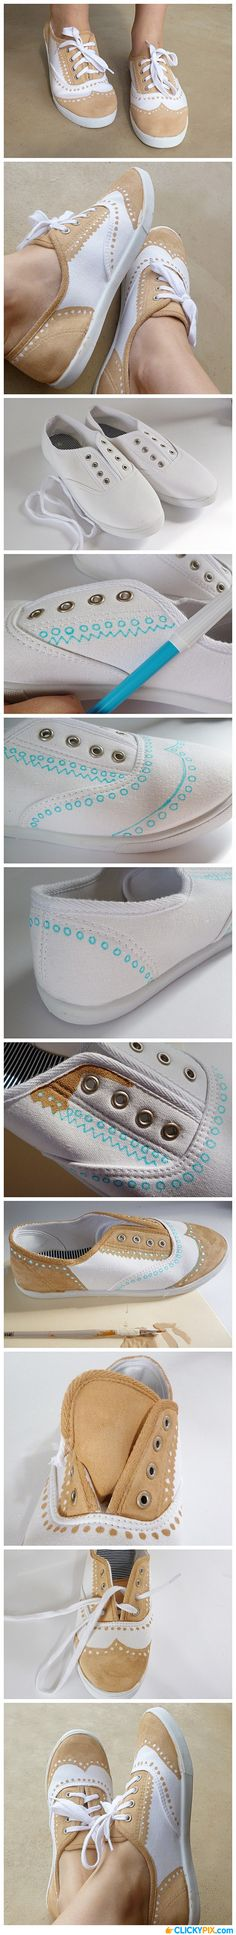 Saddle shoes! Oh the possibilities of paint on white sneakers.